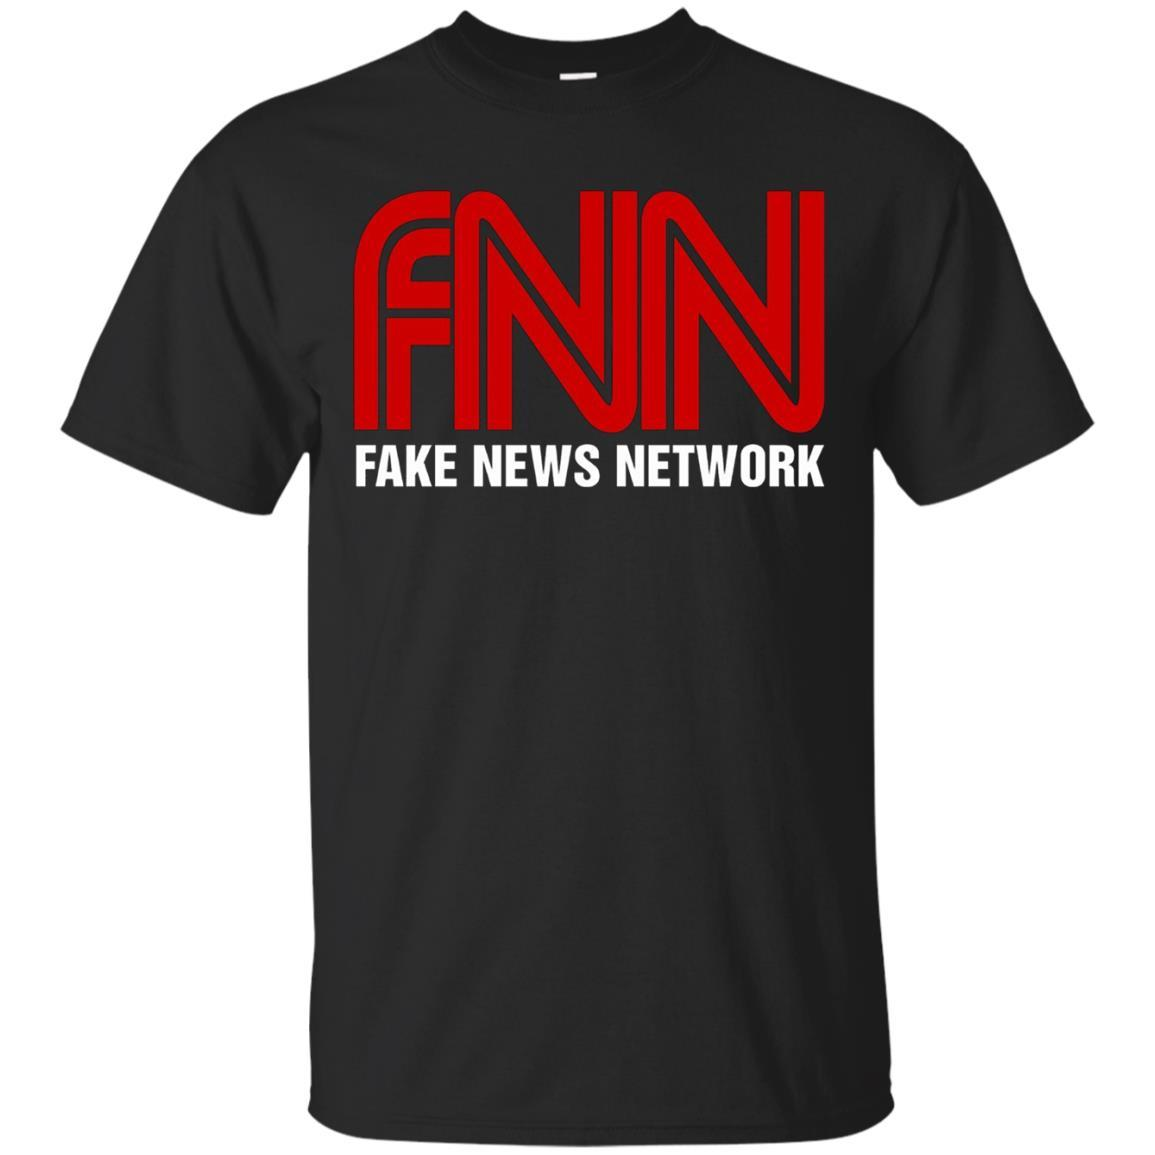 Fake News Network T-Shirt - Funny FNN Logo Humor Quote Tee Black / 5XL